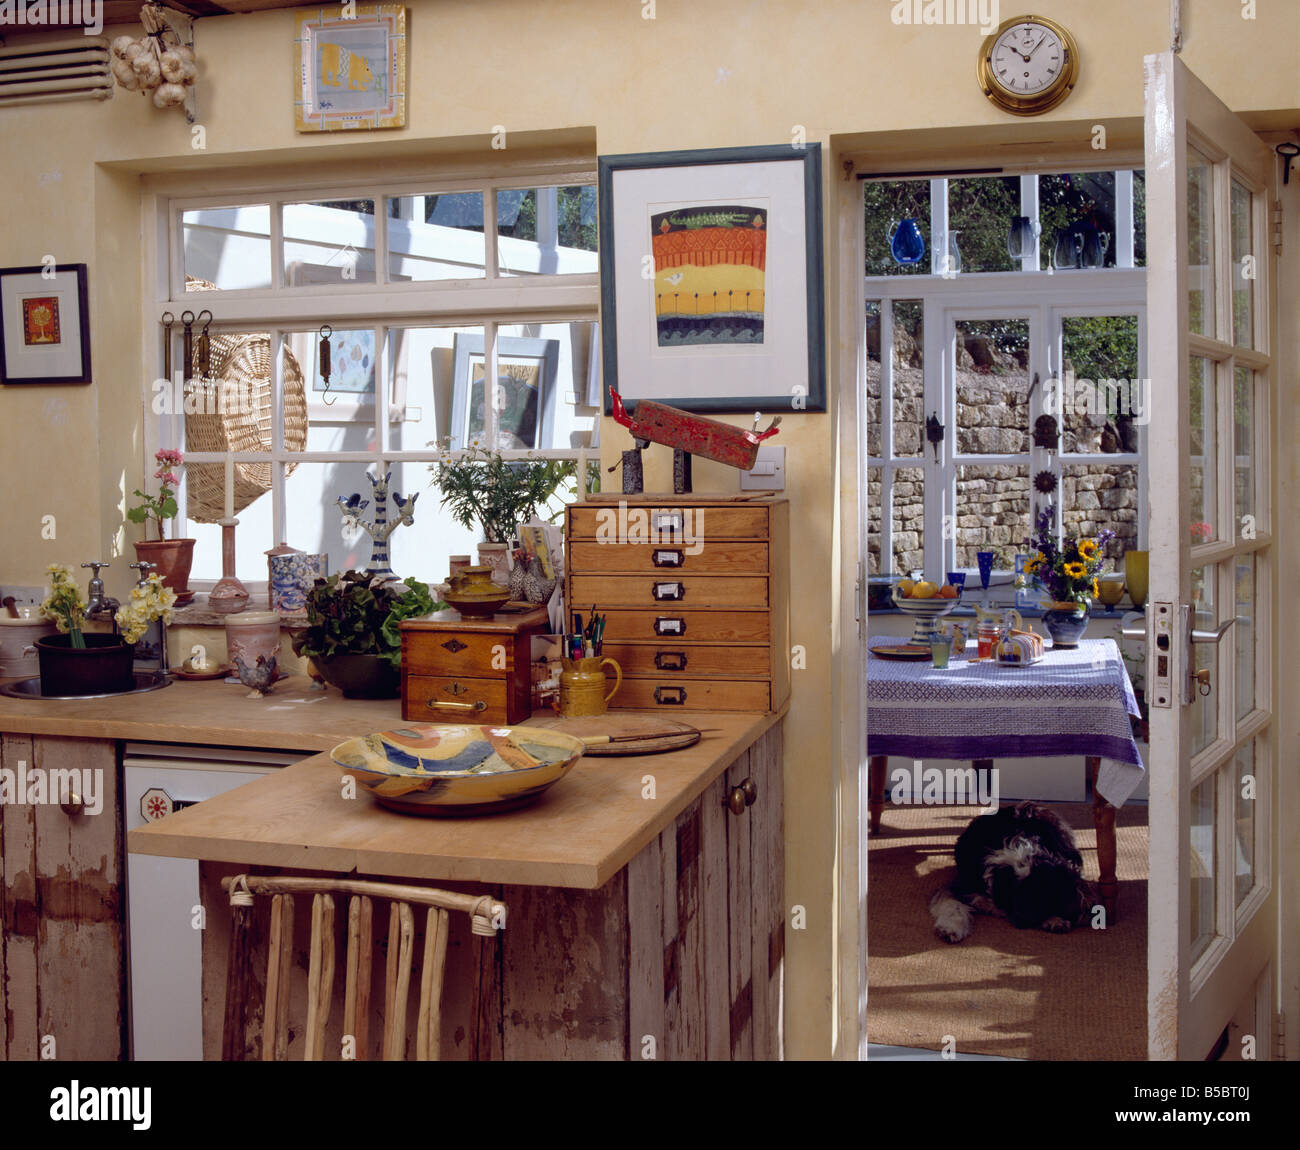 Rustic Wooden Units And Worktop In Cottage Kitchen With Glazed